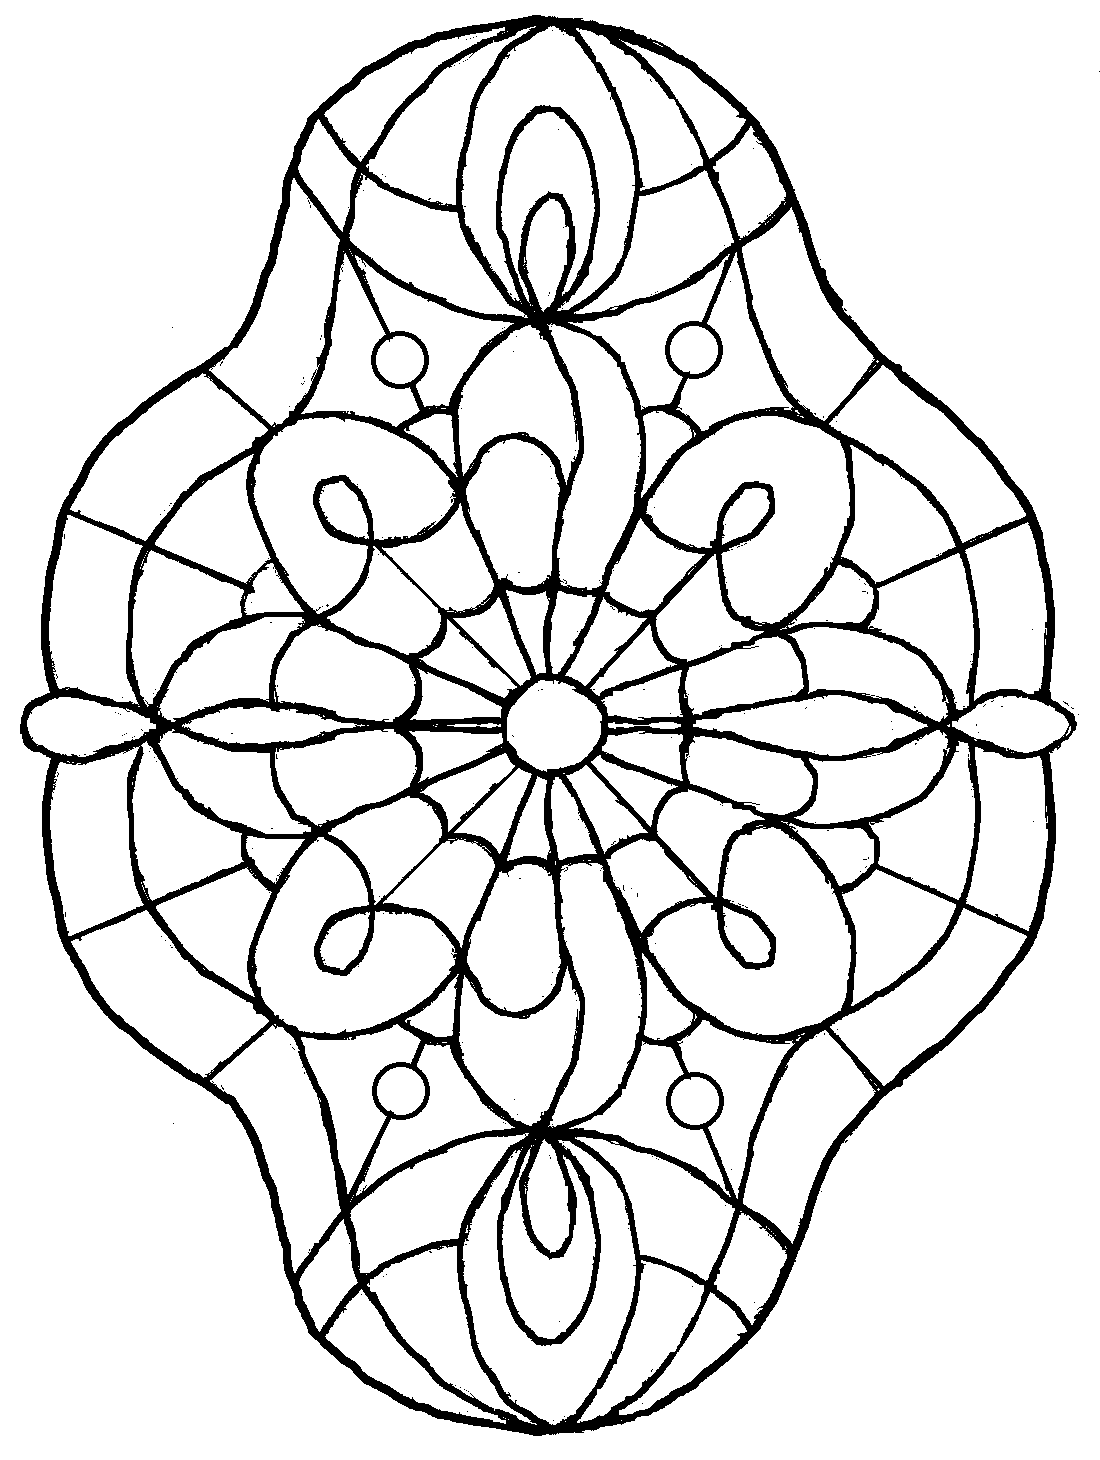 simple stained glass coloring pages - photo#10